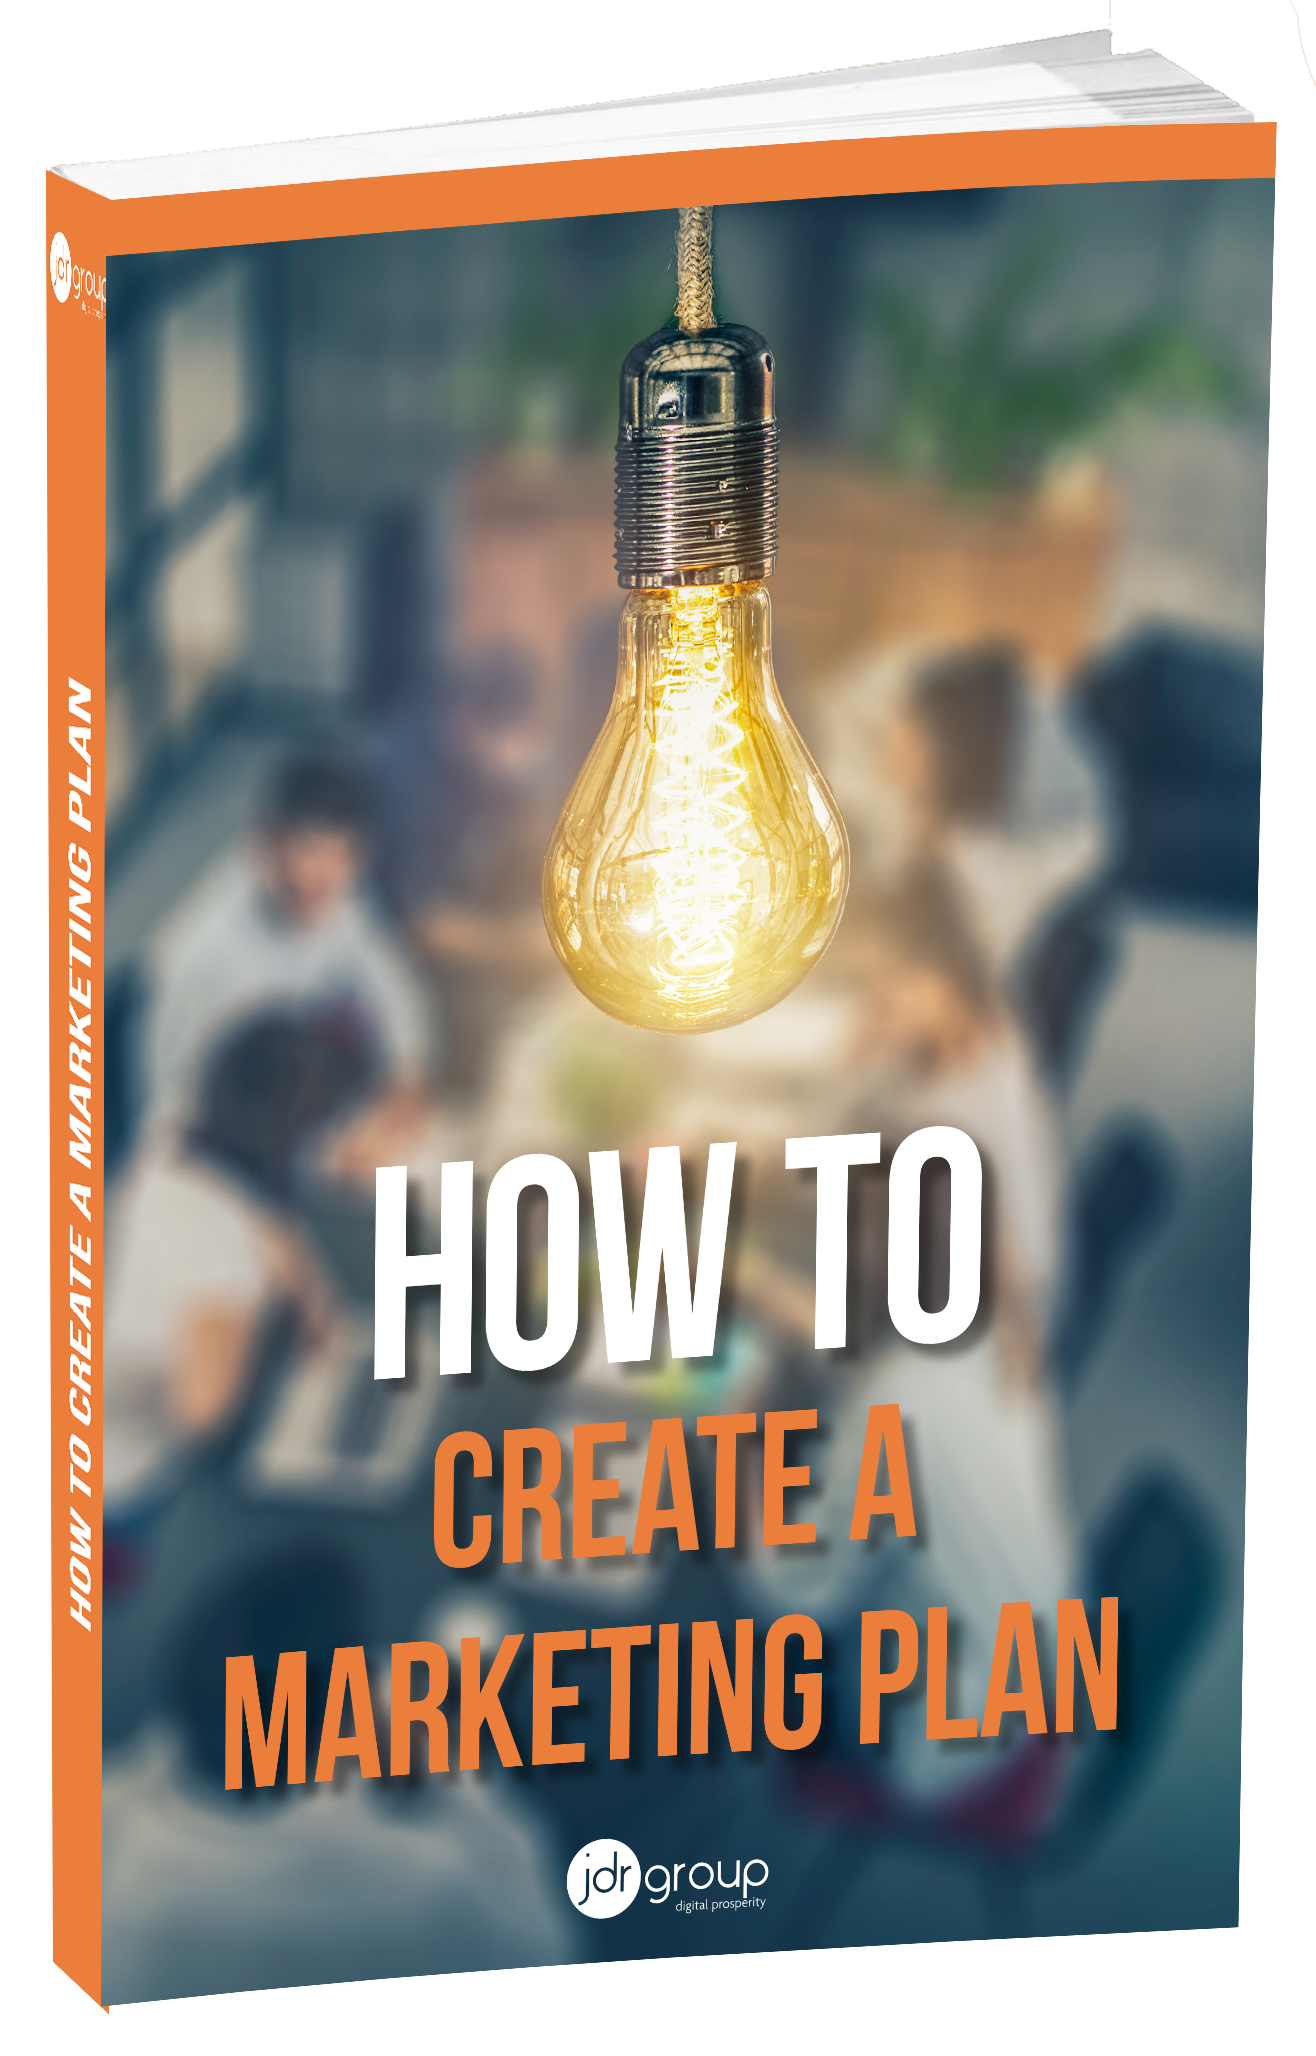 How to create a marketing plan Cover-1